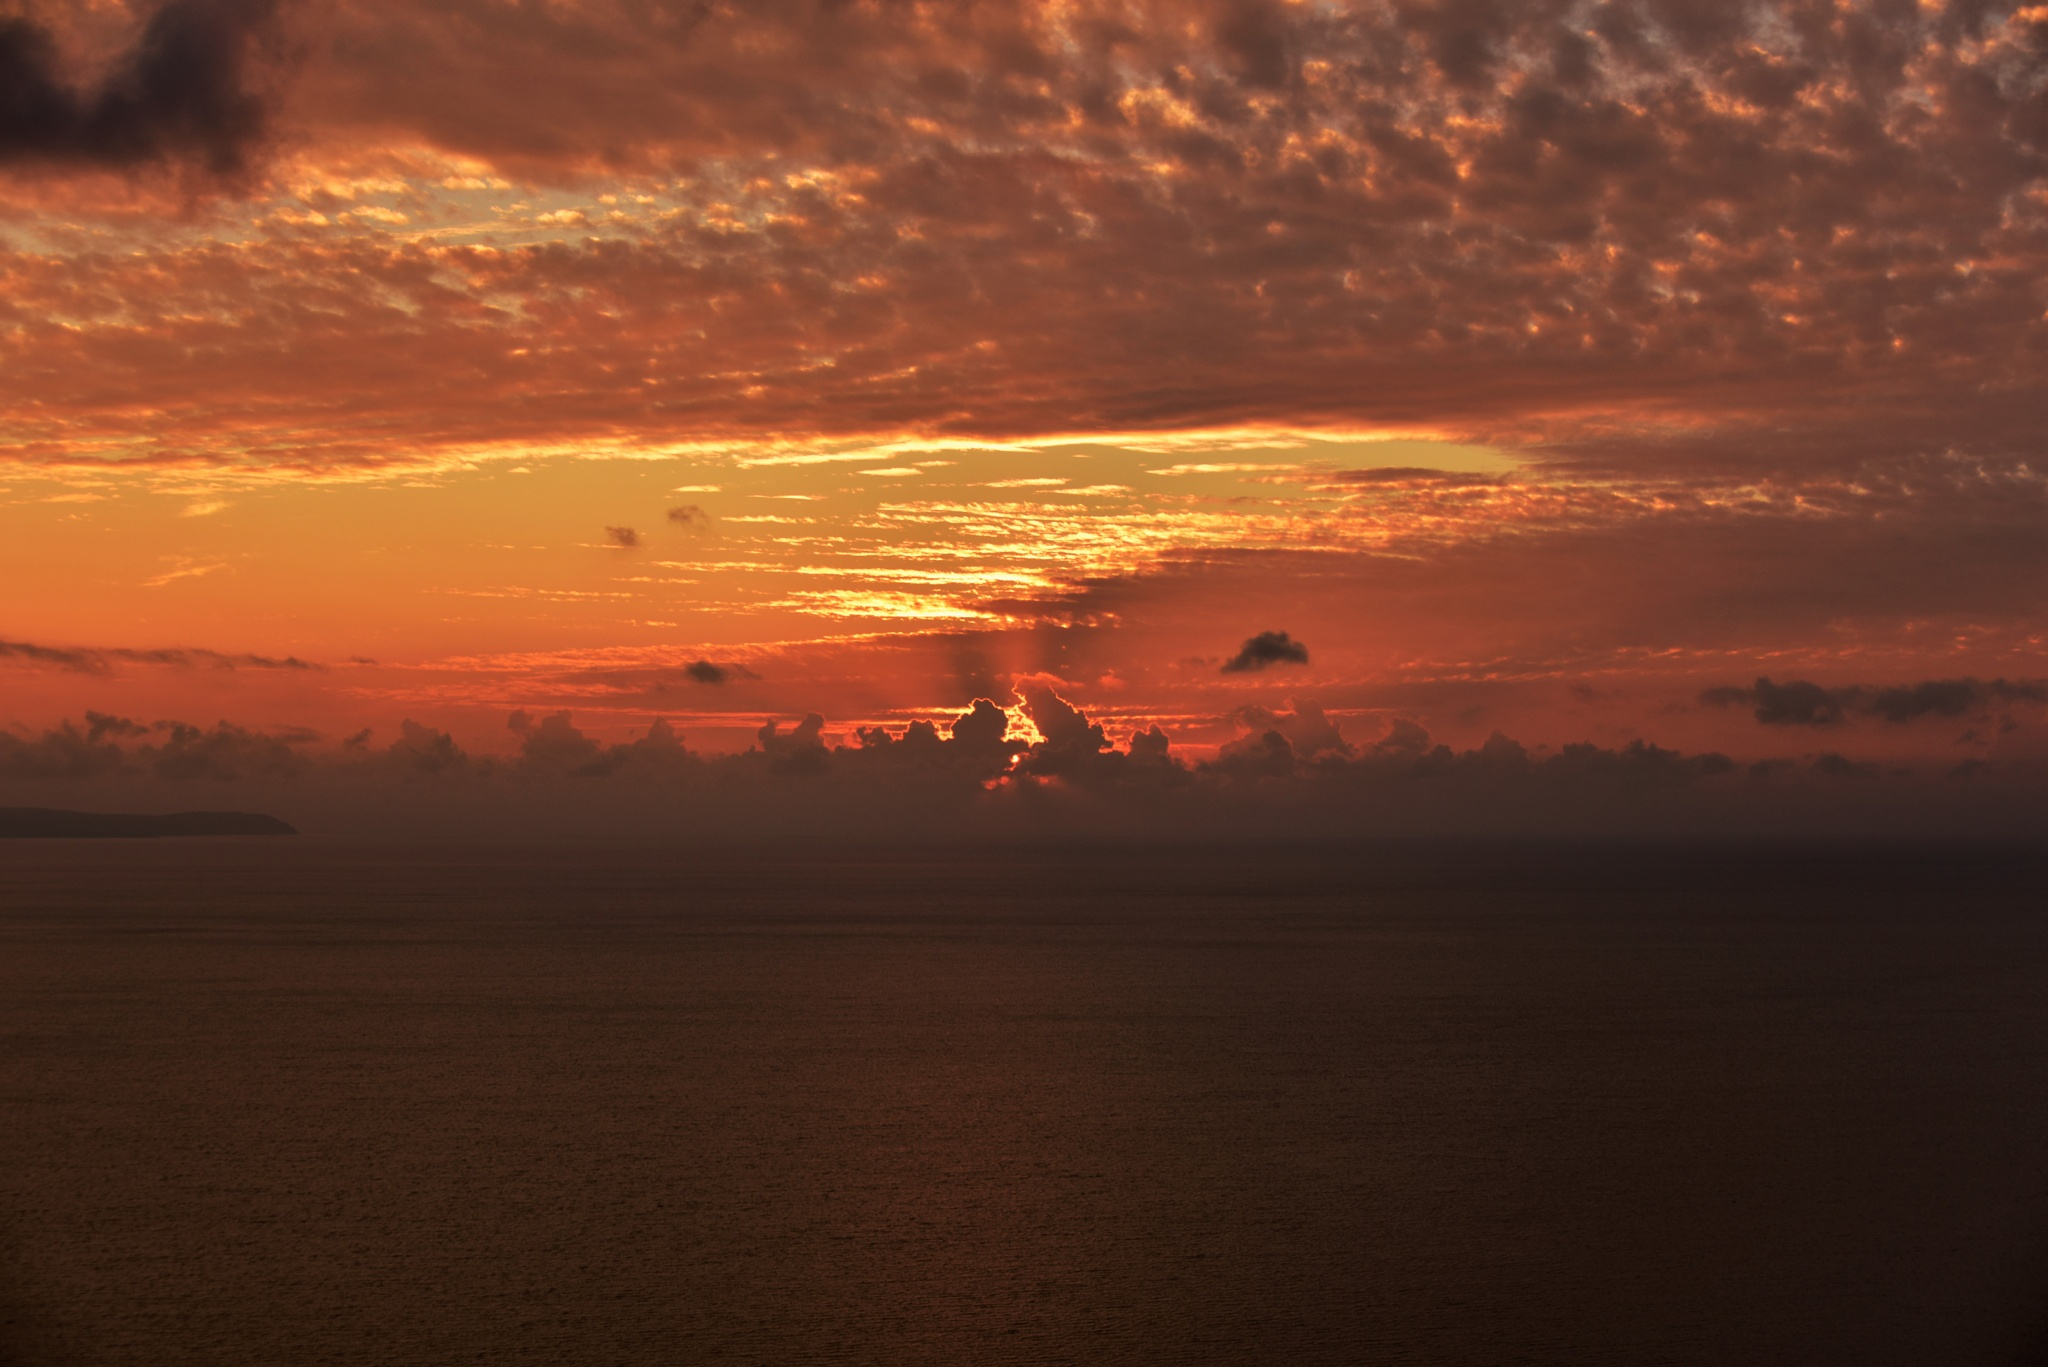 Sunset by ignazio cruccas